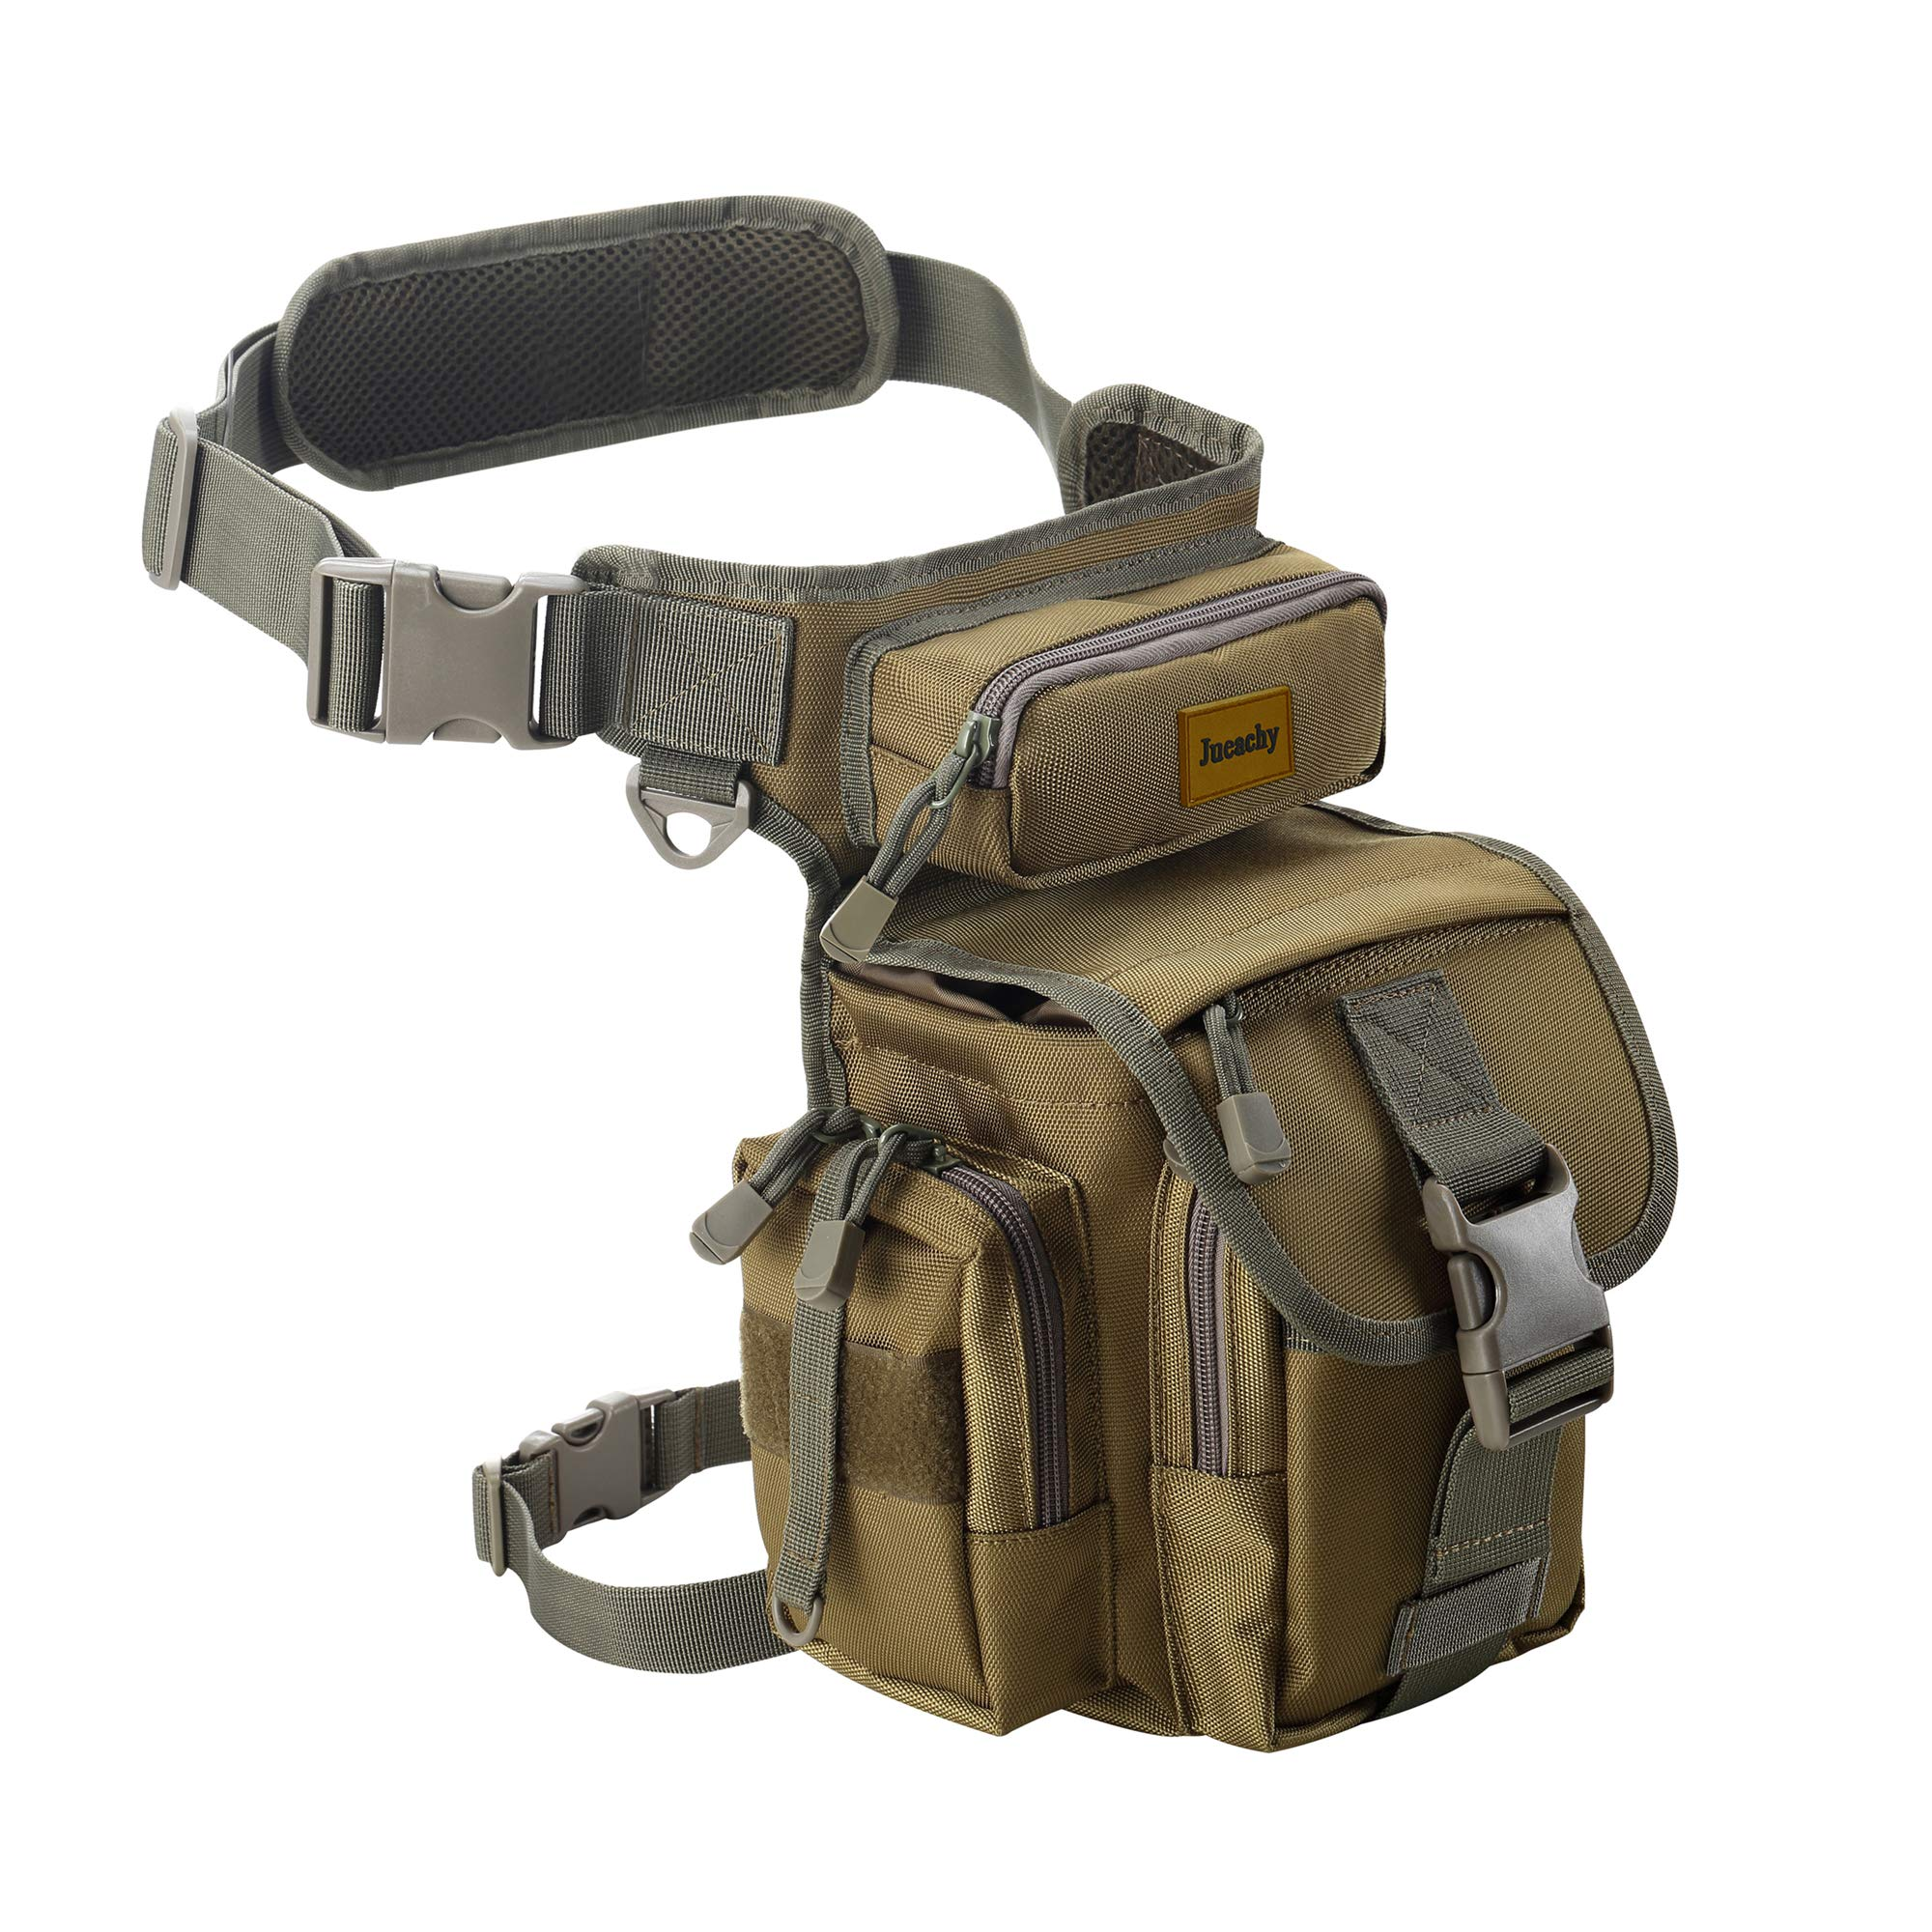 Jueachy Multifunctional Motorcycling Detachable Pouch%EF%BC%8CCoyote